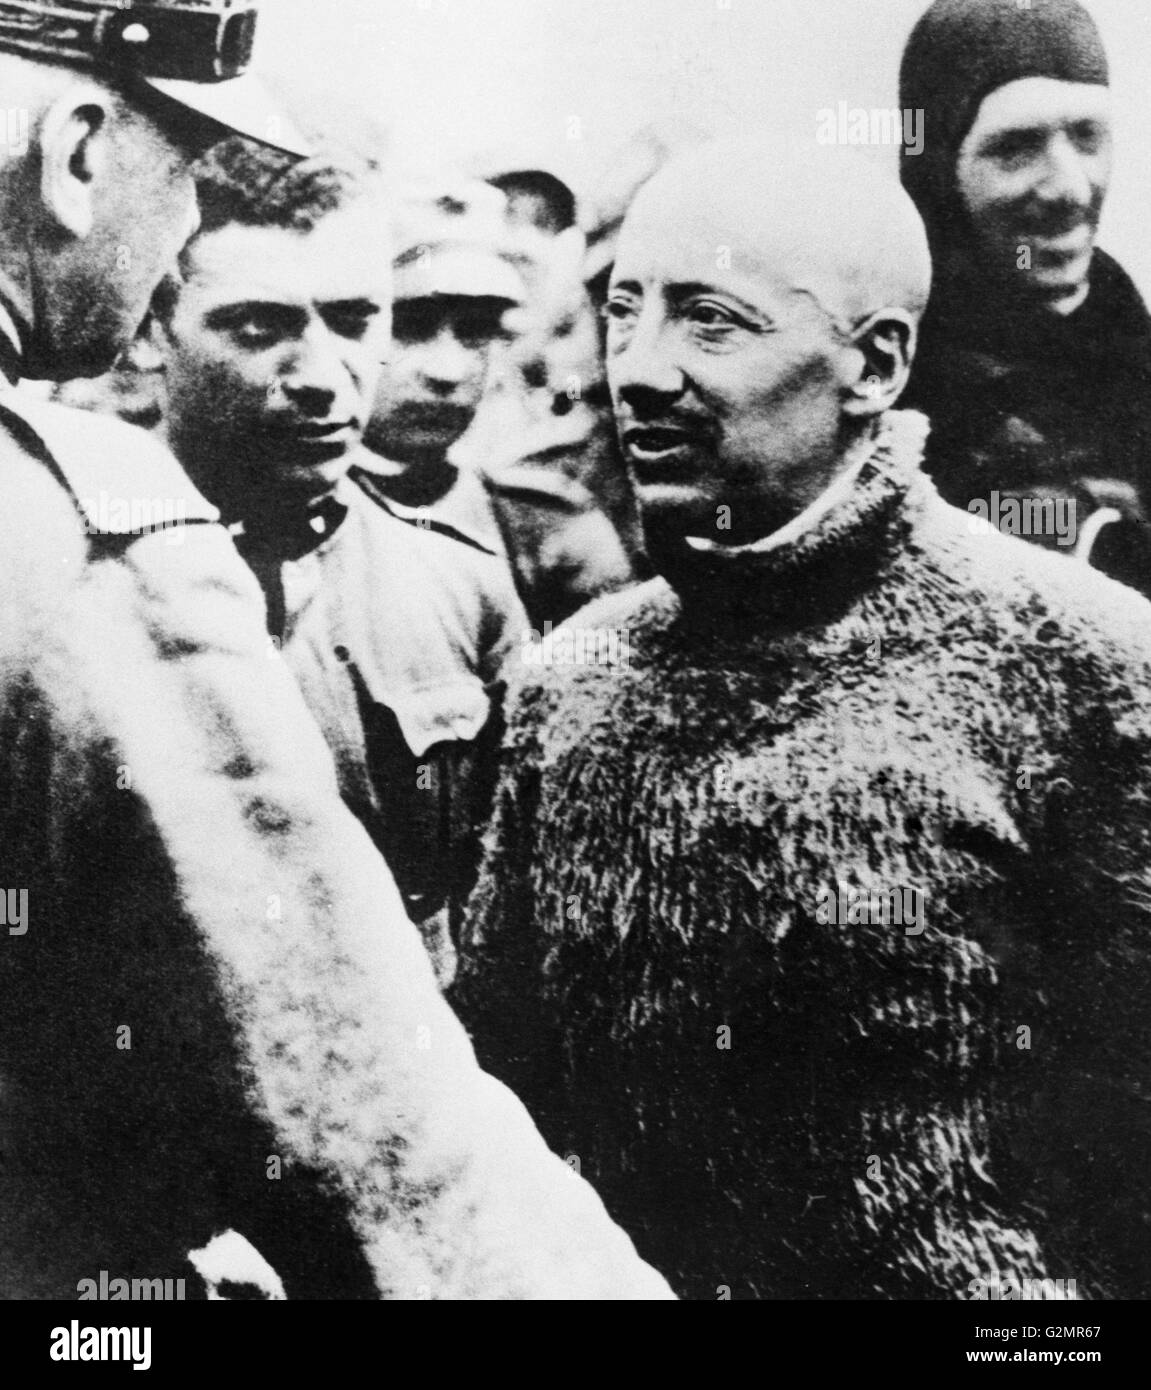 gabriele D'Annunzio after the legendary flight over vienna,1918 - Stock Image